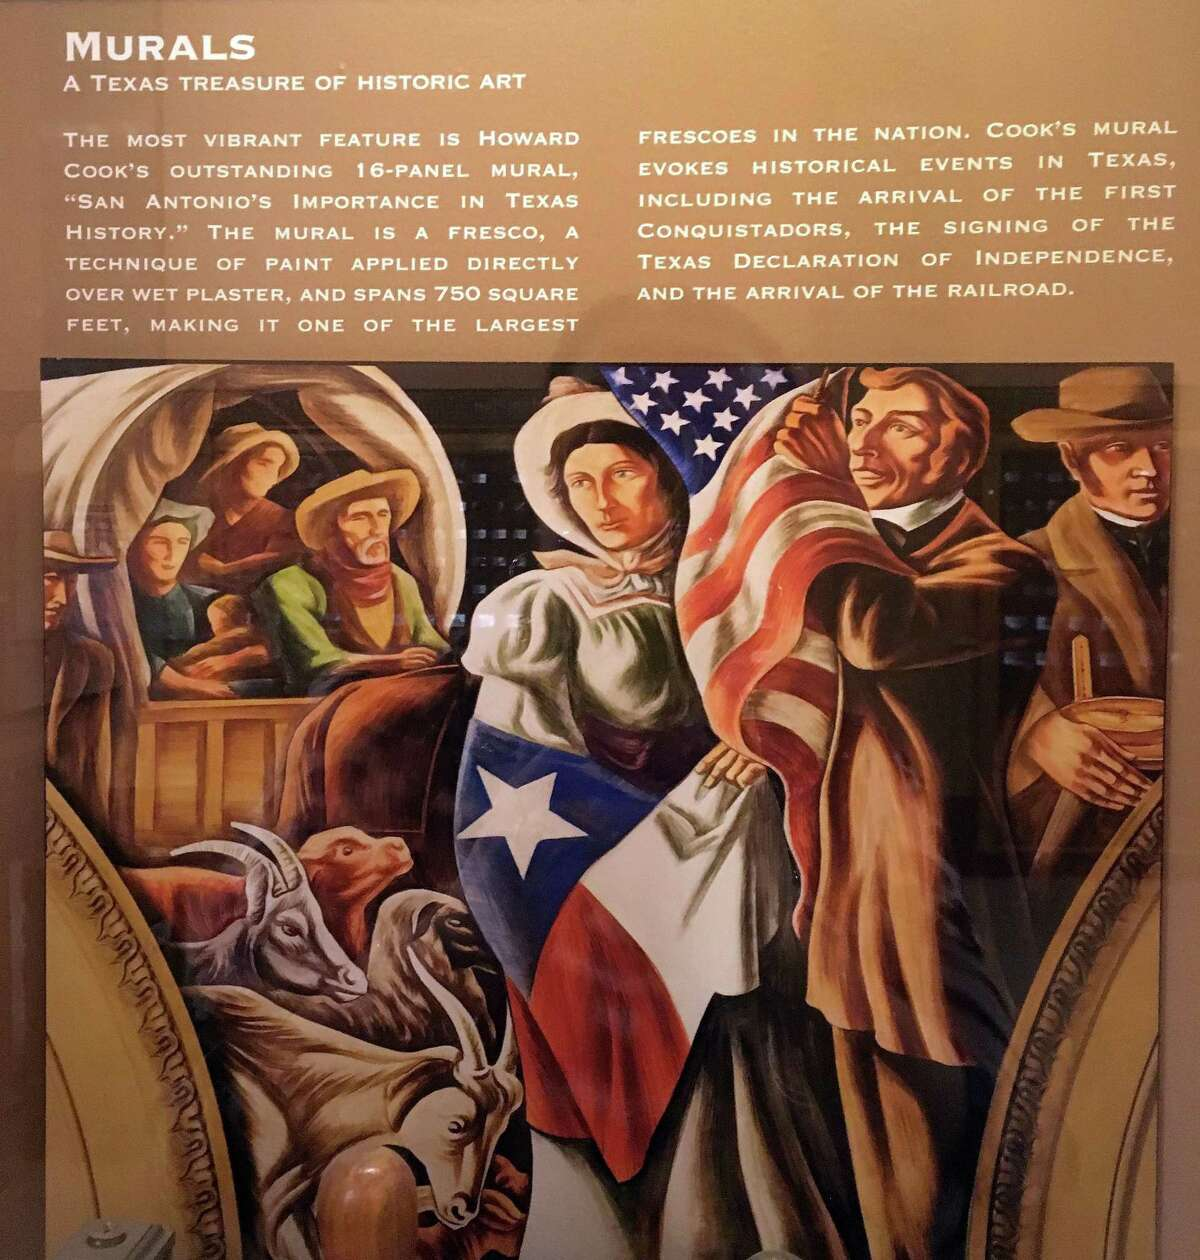 Close-up of mural panel from one of the lobby panels about the series, depicting Stephen F. Austin bringing pioneer families to Texas.